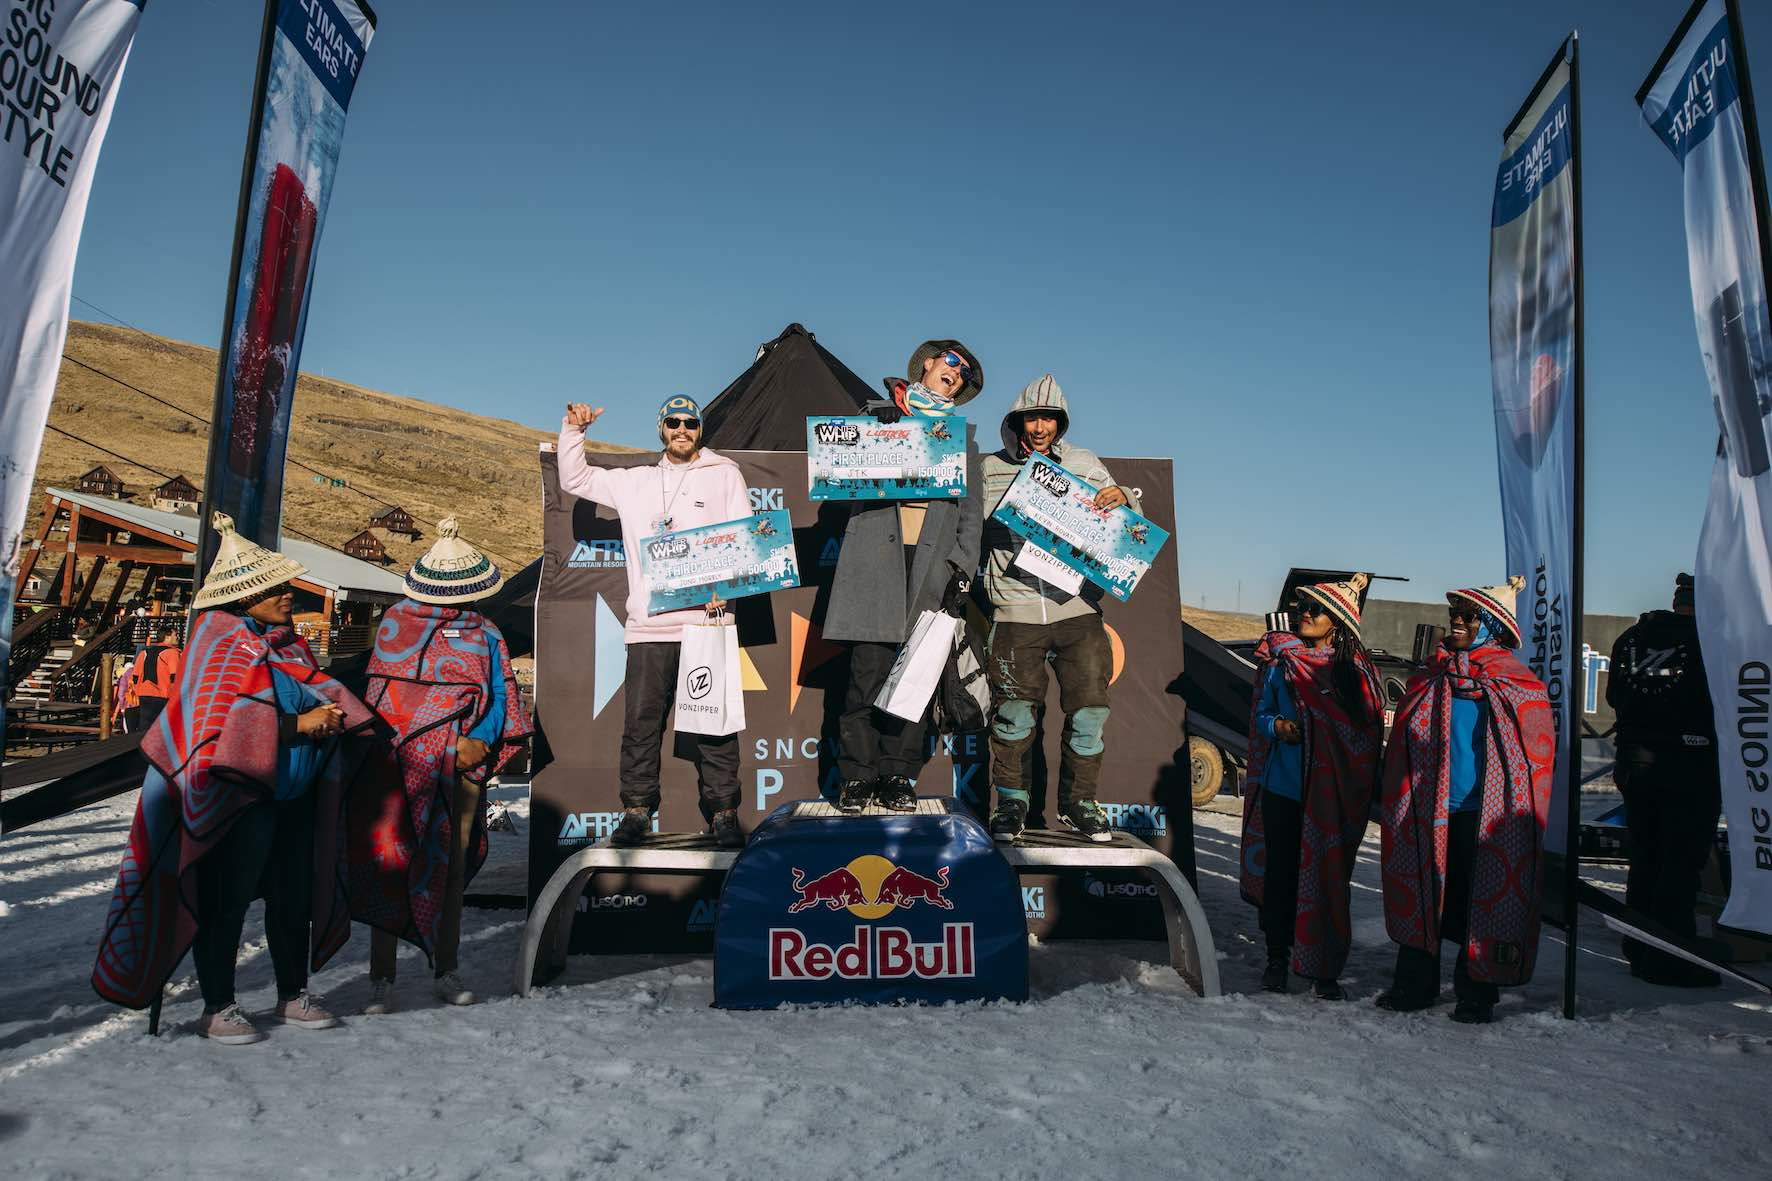 Ski podium at the 2019 Ultimate Ears Winter Whip Snowboard and Ski Festival